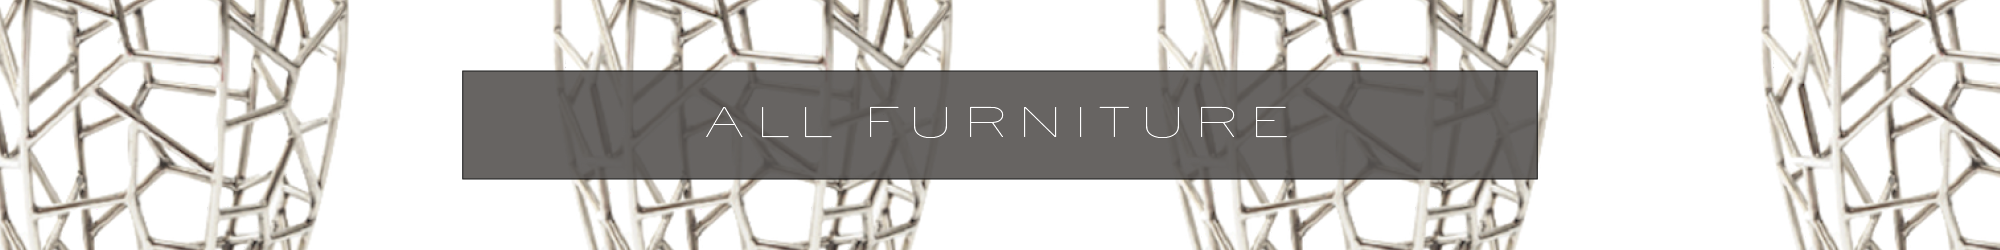 All furniture zarin fabrics What furniture brands does home goods carry